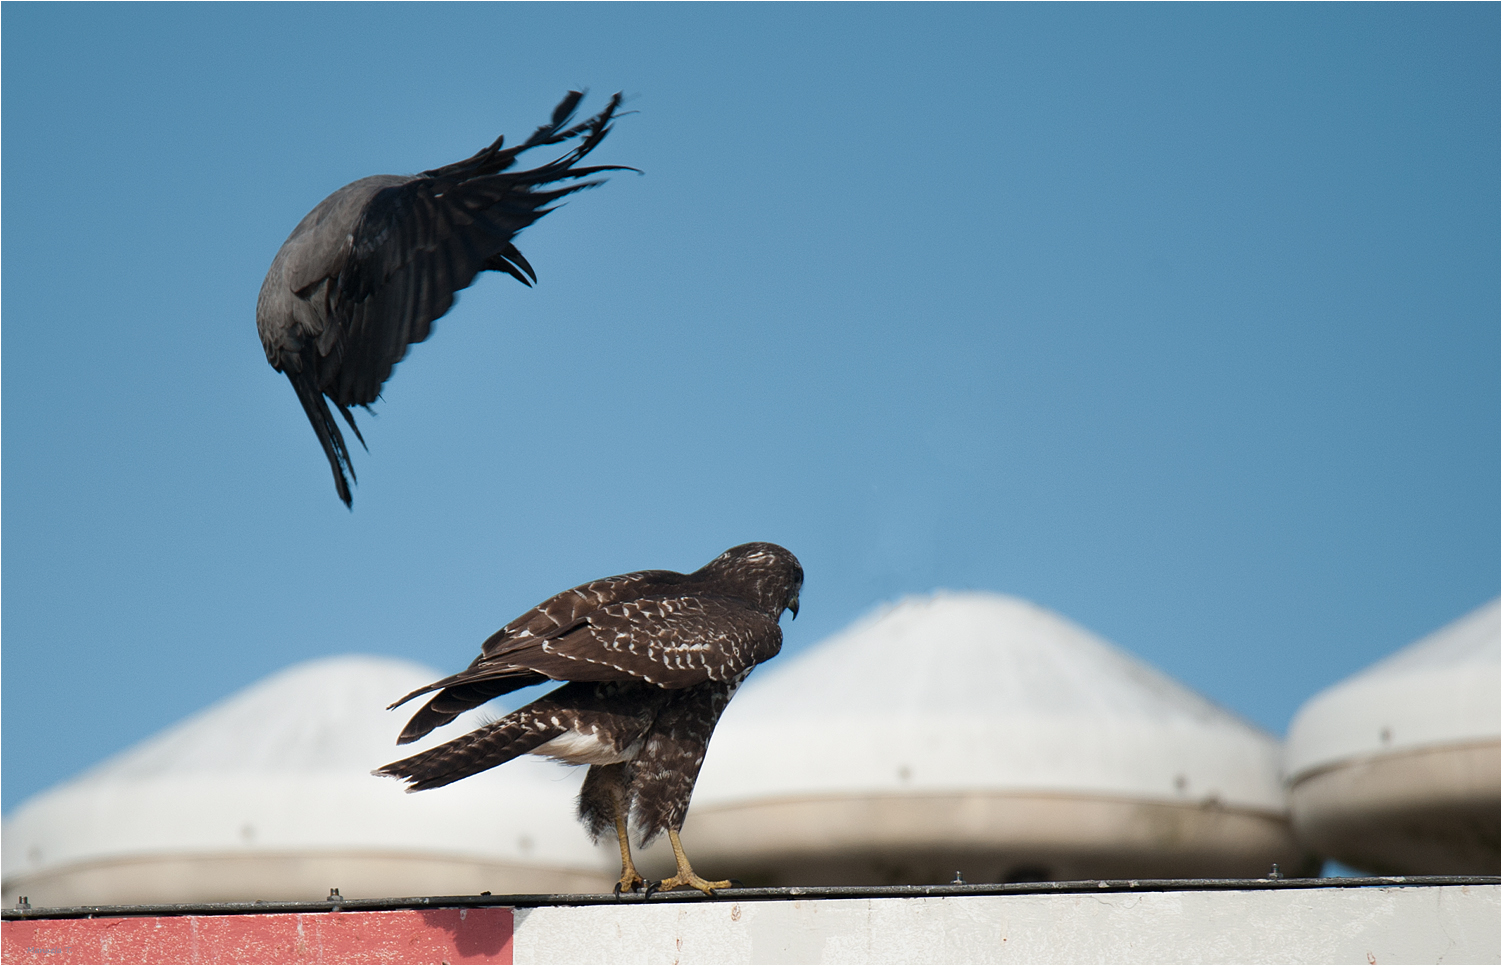 ignored by the buzzard